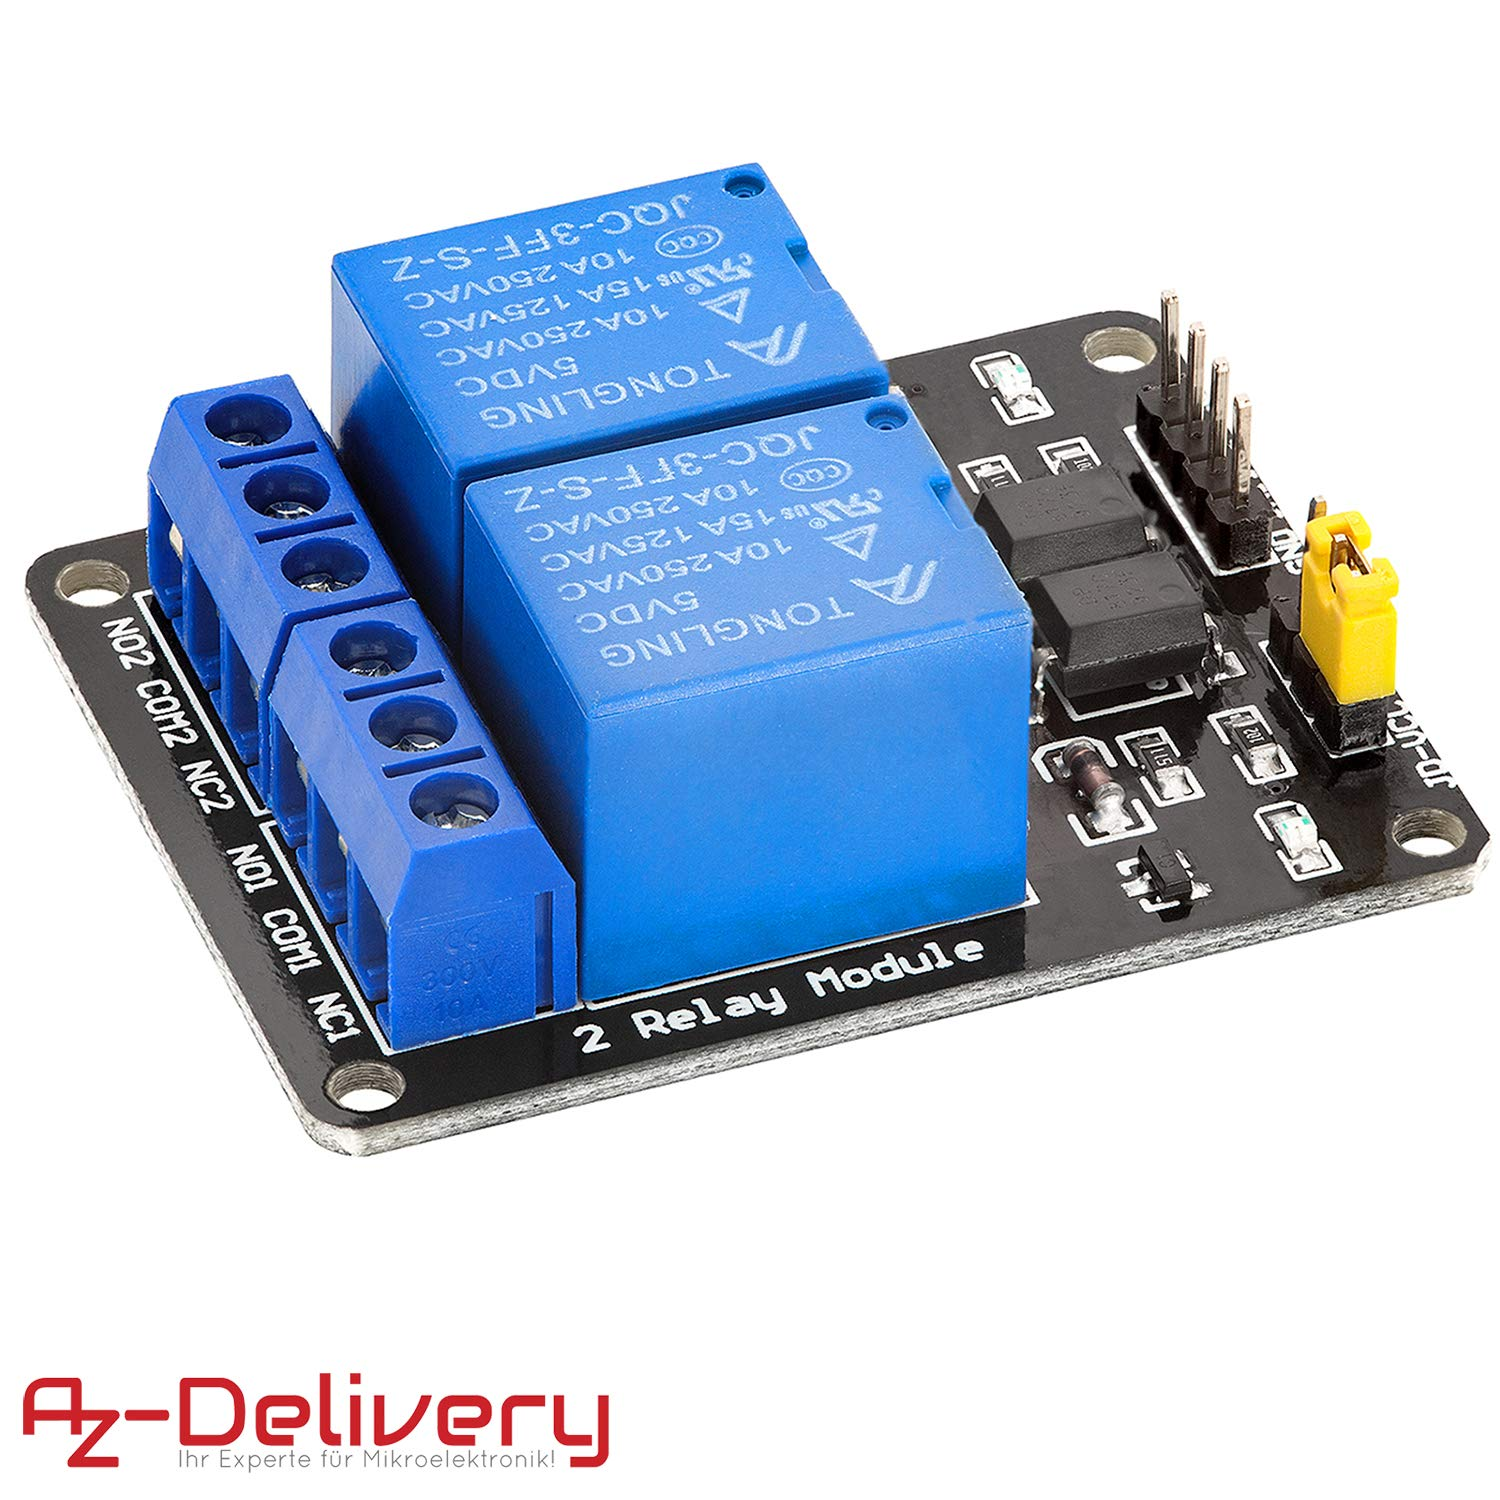 AZDelivery Rele Modulo de 2 canales 5V con optoacoplador Low-Level-Trigger para Arduino con eBook incluido